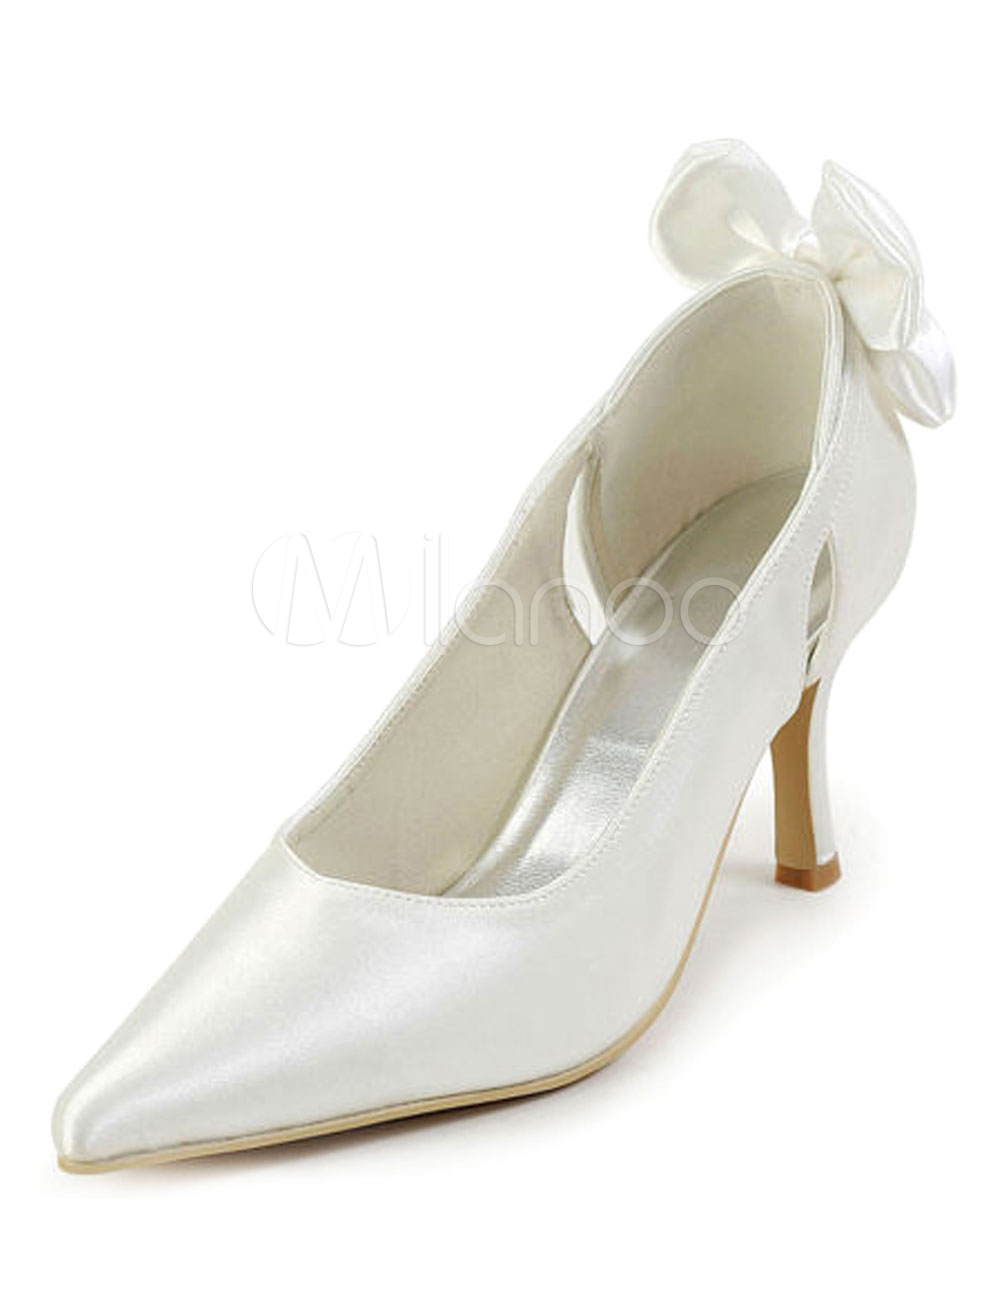 White Bow Bridal Pumps Satin Wedding Heels for Women